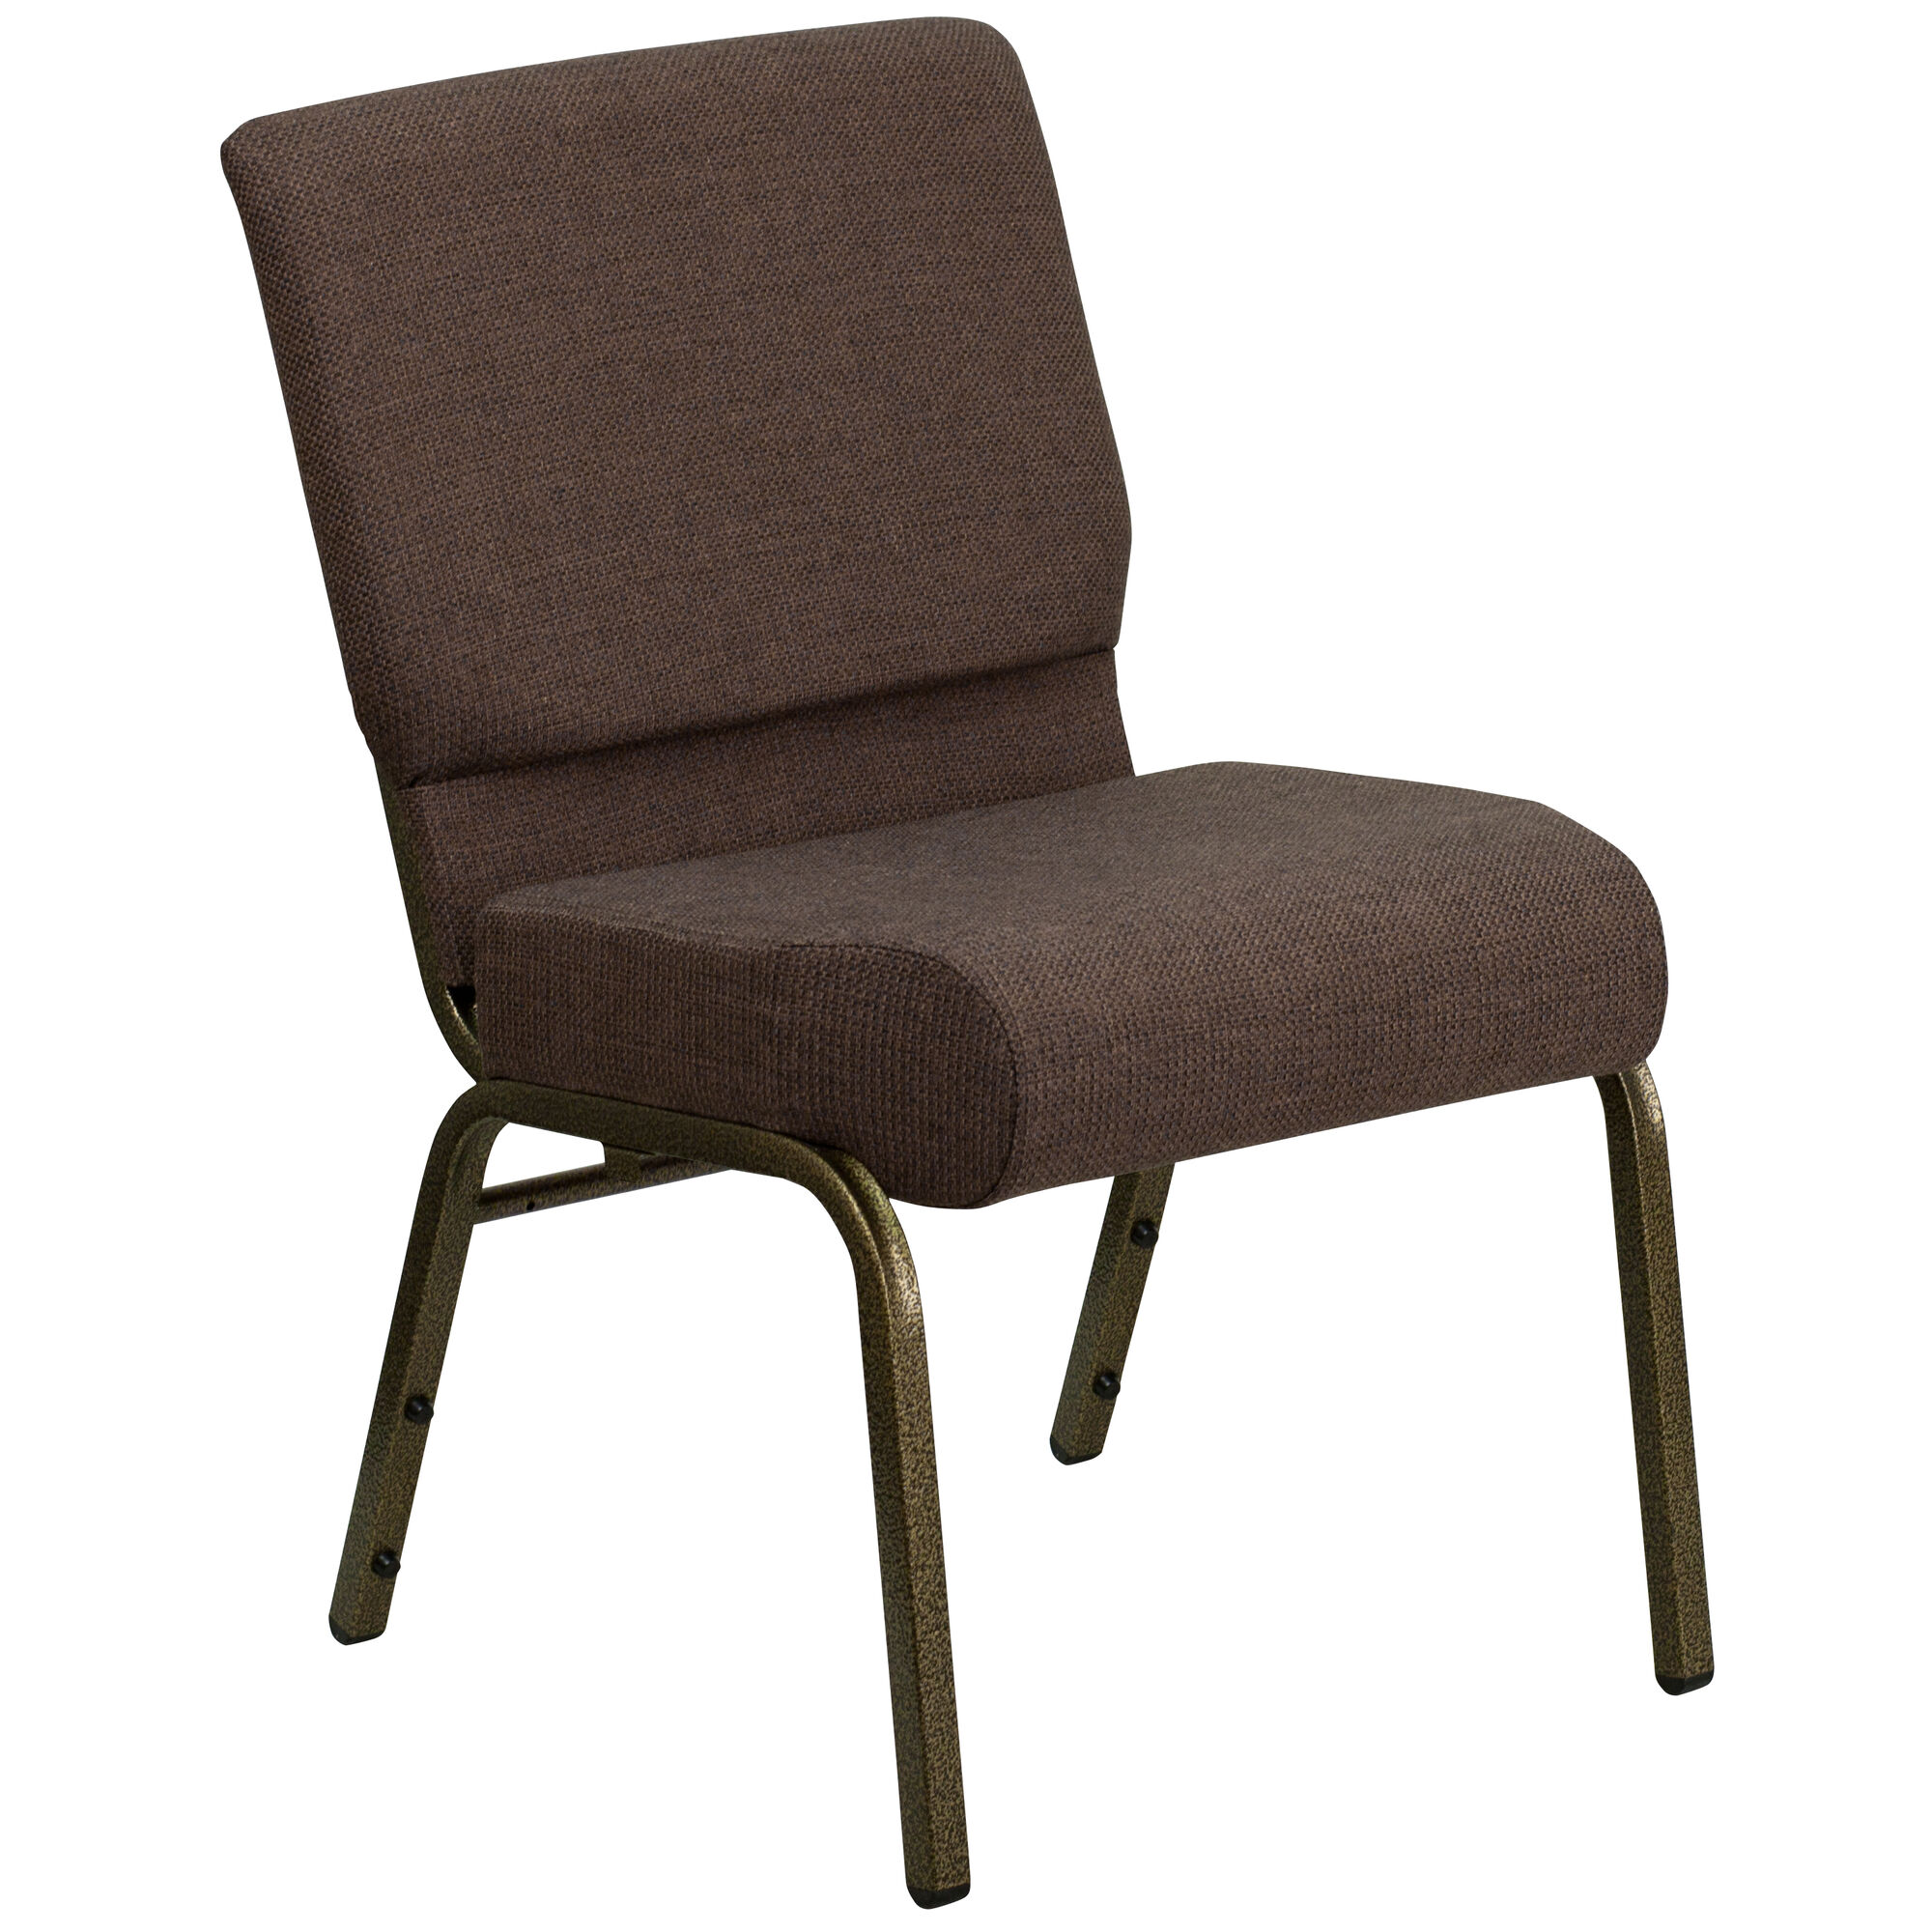 church chair ikea white room folding conference and chairs robin lawn office used day somerset size cheap stacking hille restaurant plastic polypropylene polyprop bistro adirondack stackable sale secondhand for wood full padded metal outdoor furniture of tables